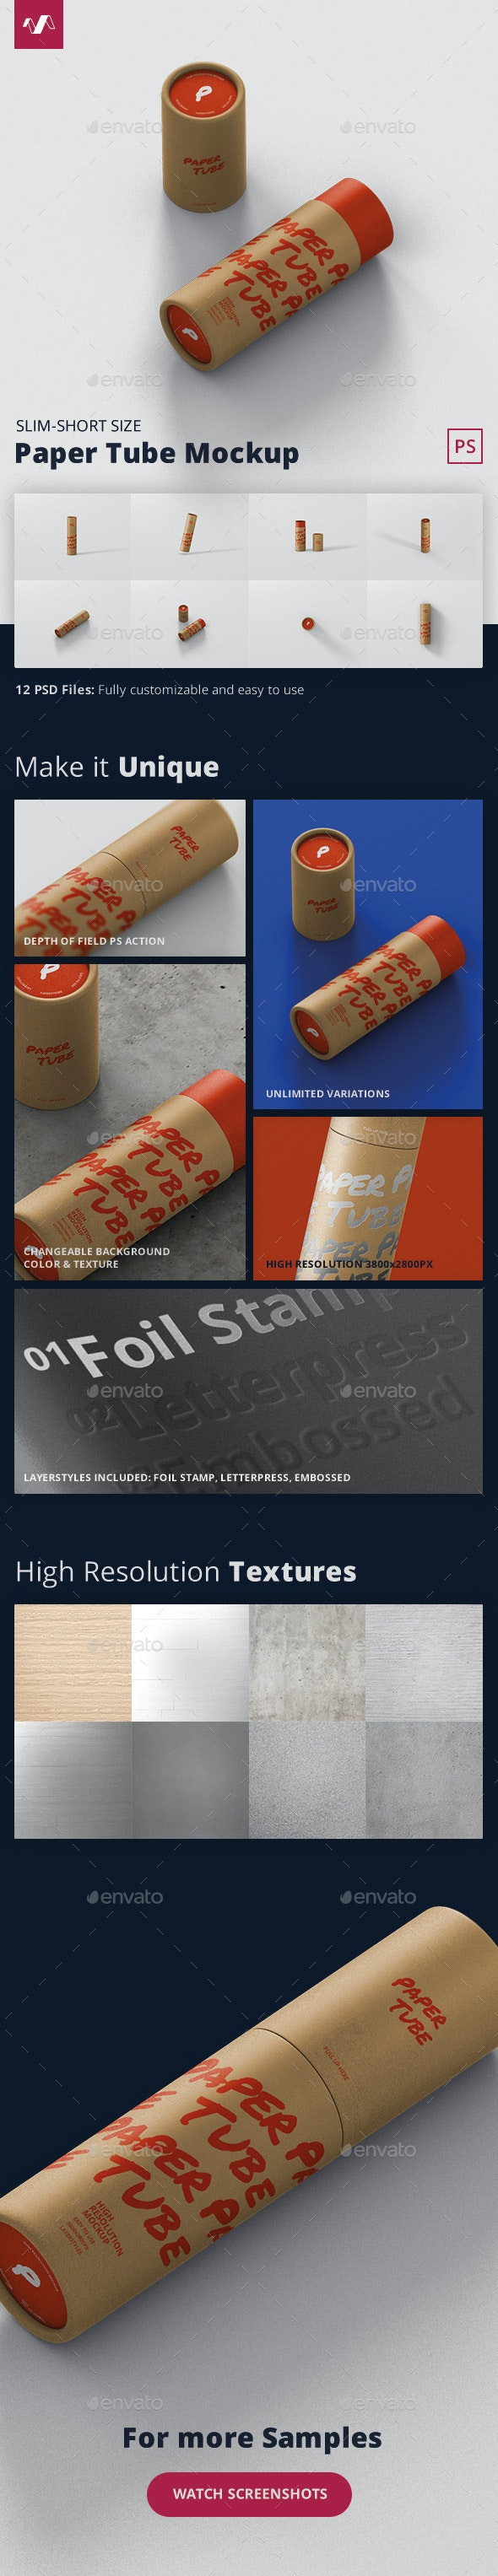 Paper Tube Mockup - Slim Short Size - Miscellaneous Packaging